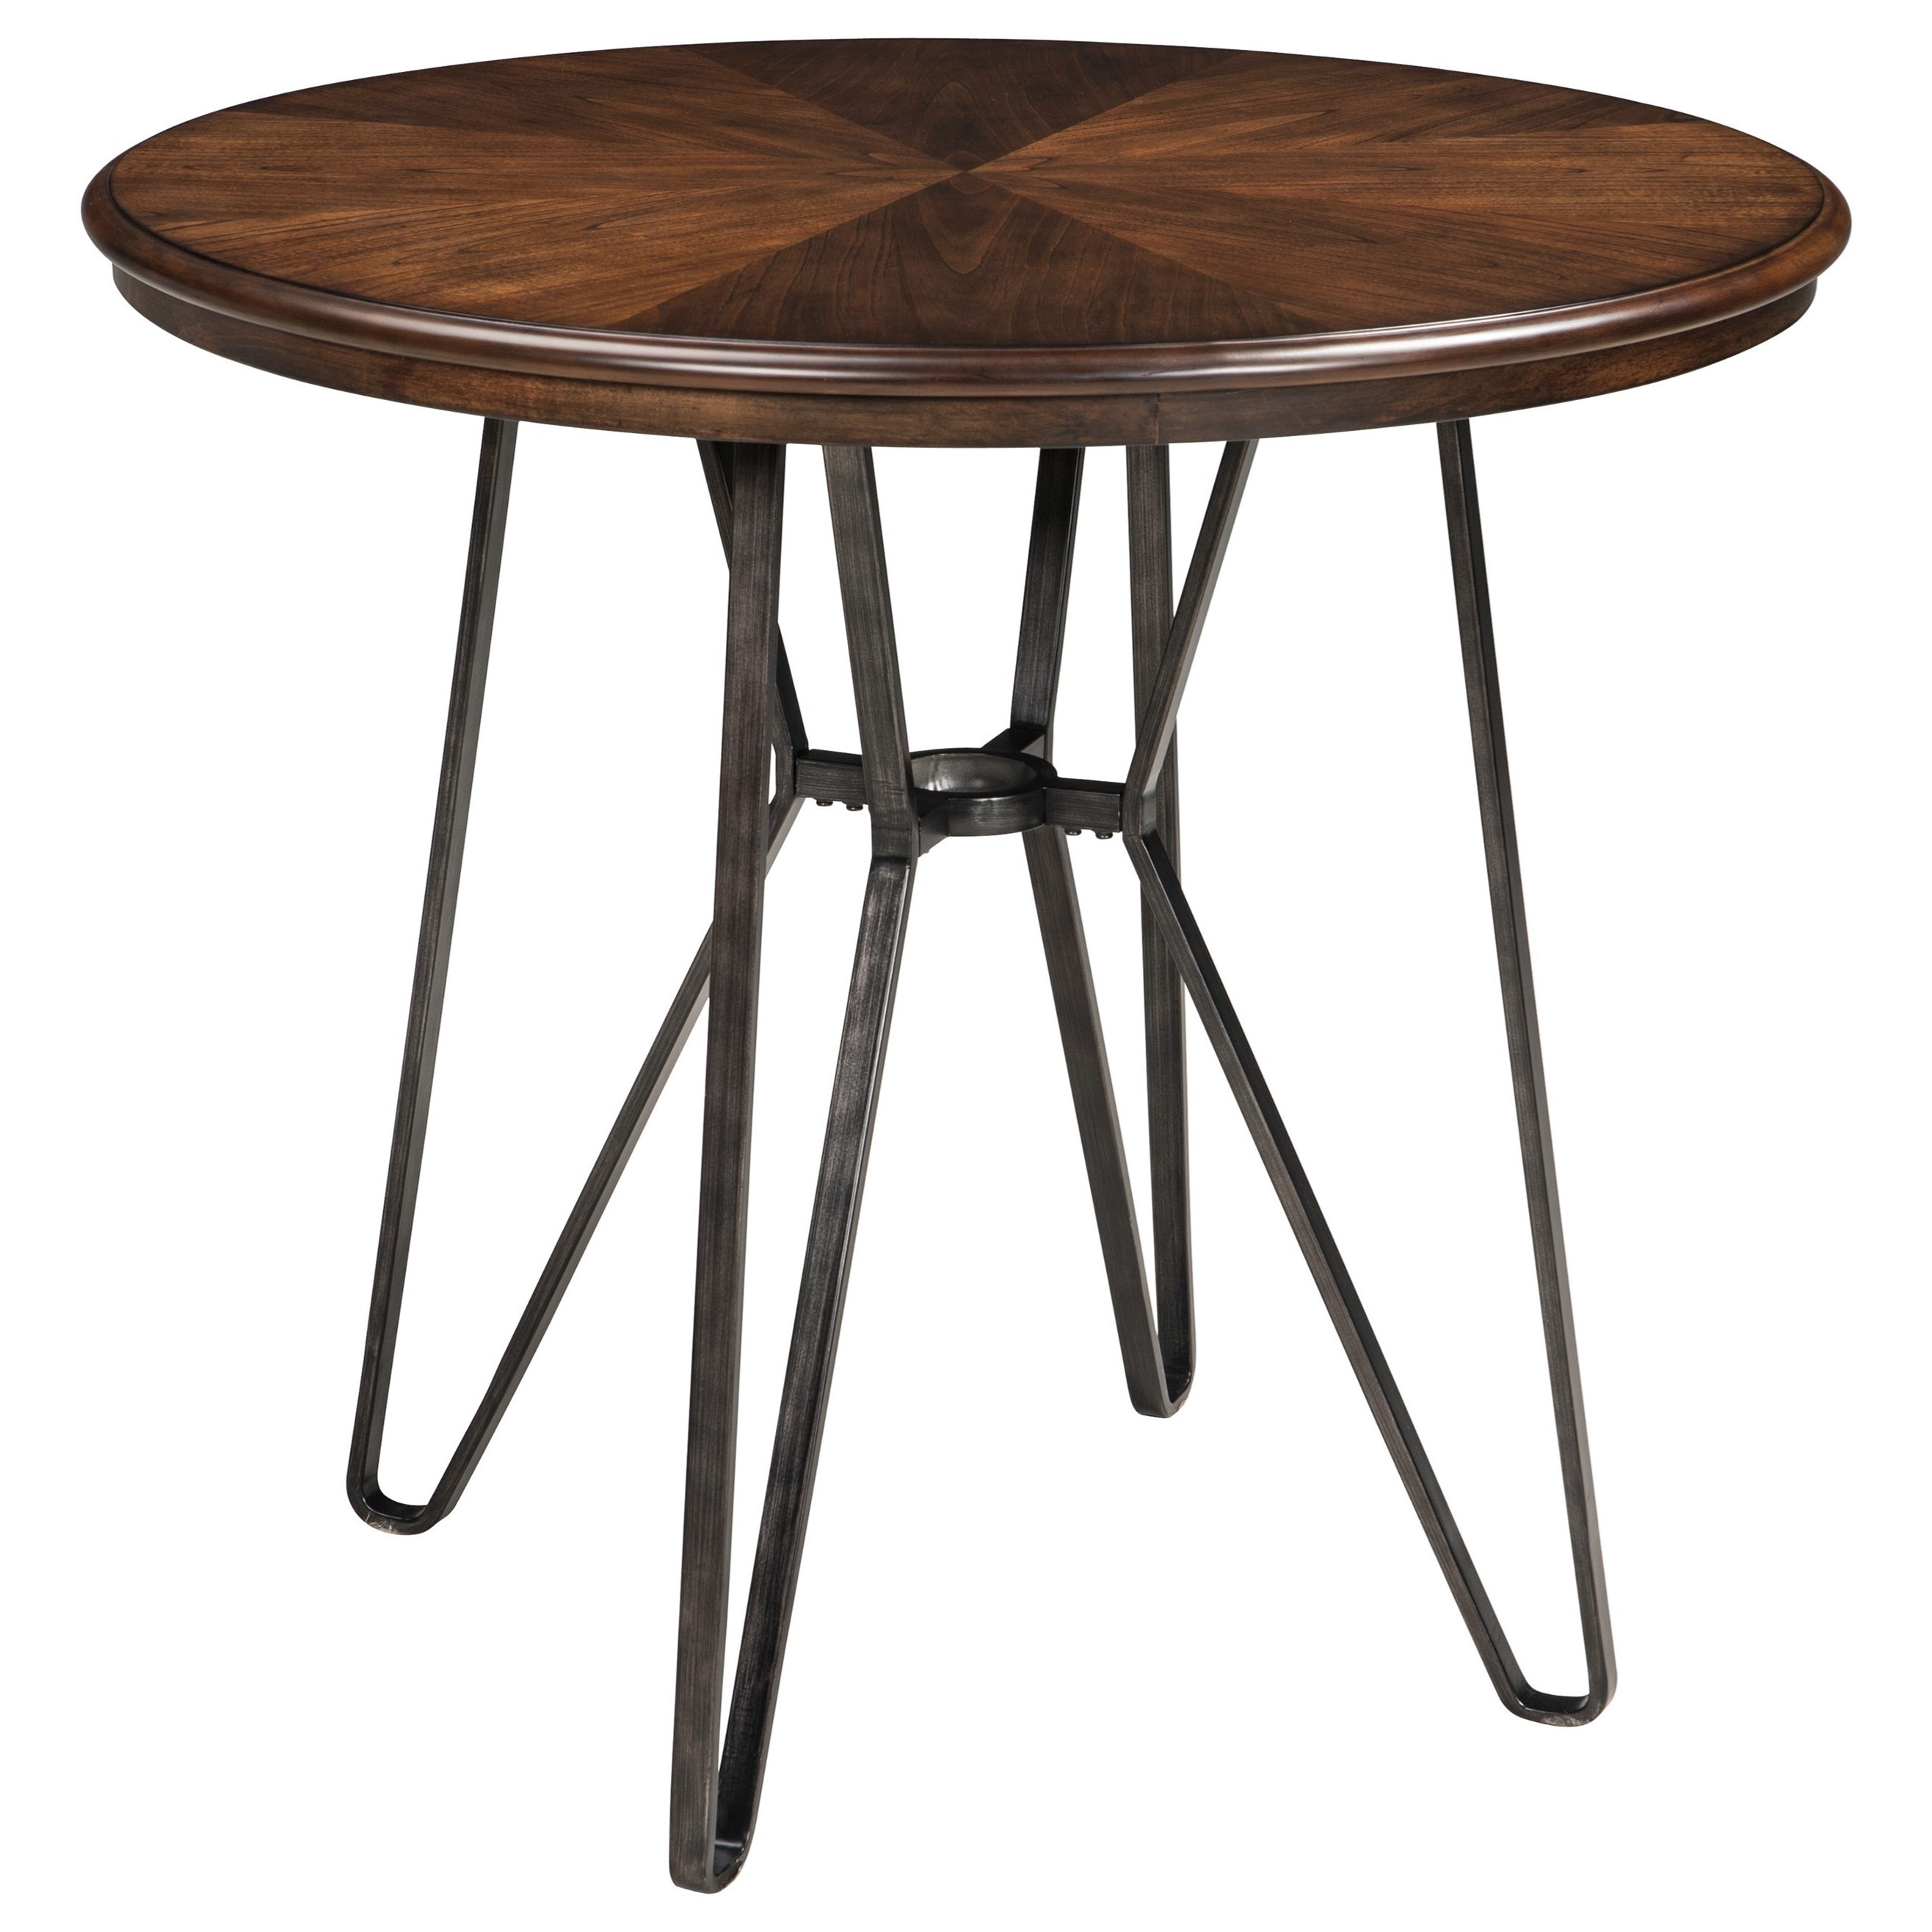 Centiar Round Dining Room Counter Table by Ashley at Morris Home